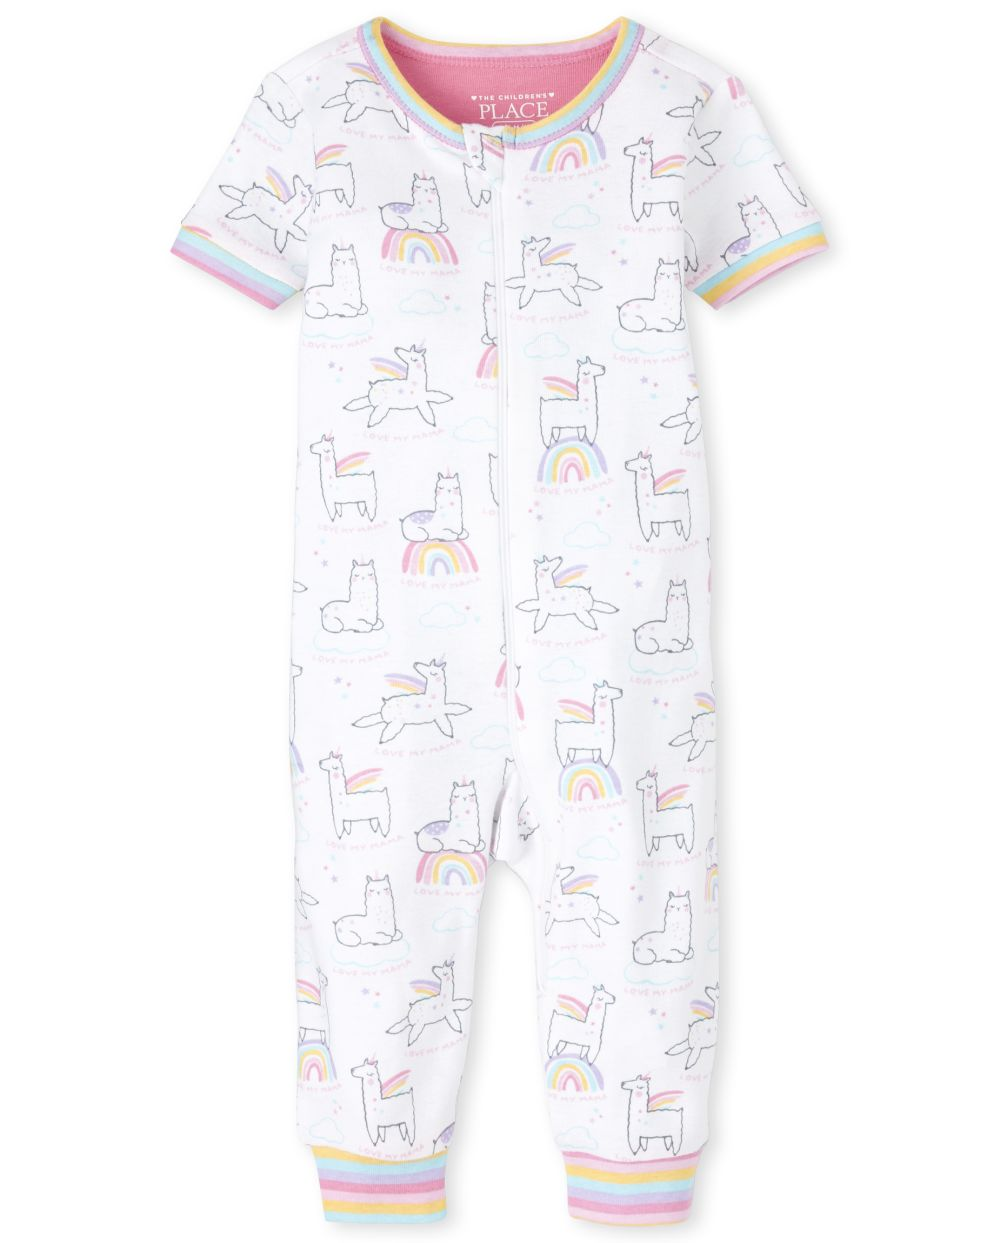 Baby And Toddler Girls Rainbow Llamacorn Snug Fit Cotton One Piece Pajamas